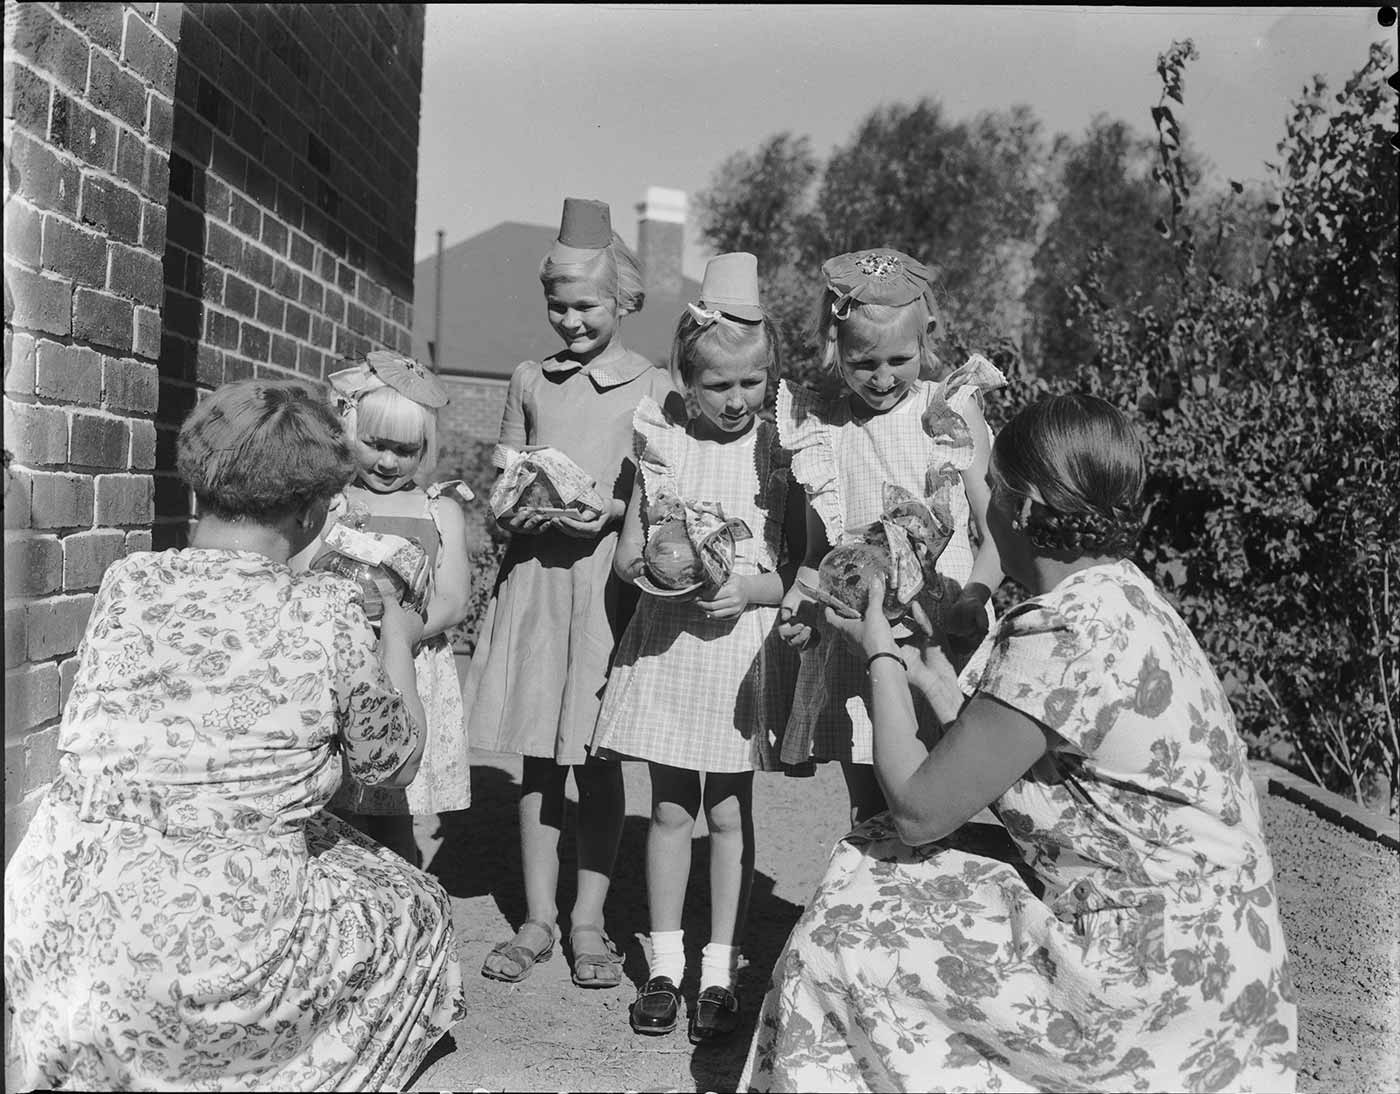 Black and white photo showing four young girls, wearing dresses and party hats, receiving gifts from two women, who kneel in front of the girls, with their backs to the camera. - click to view larger image